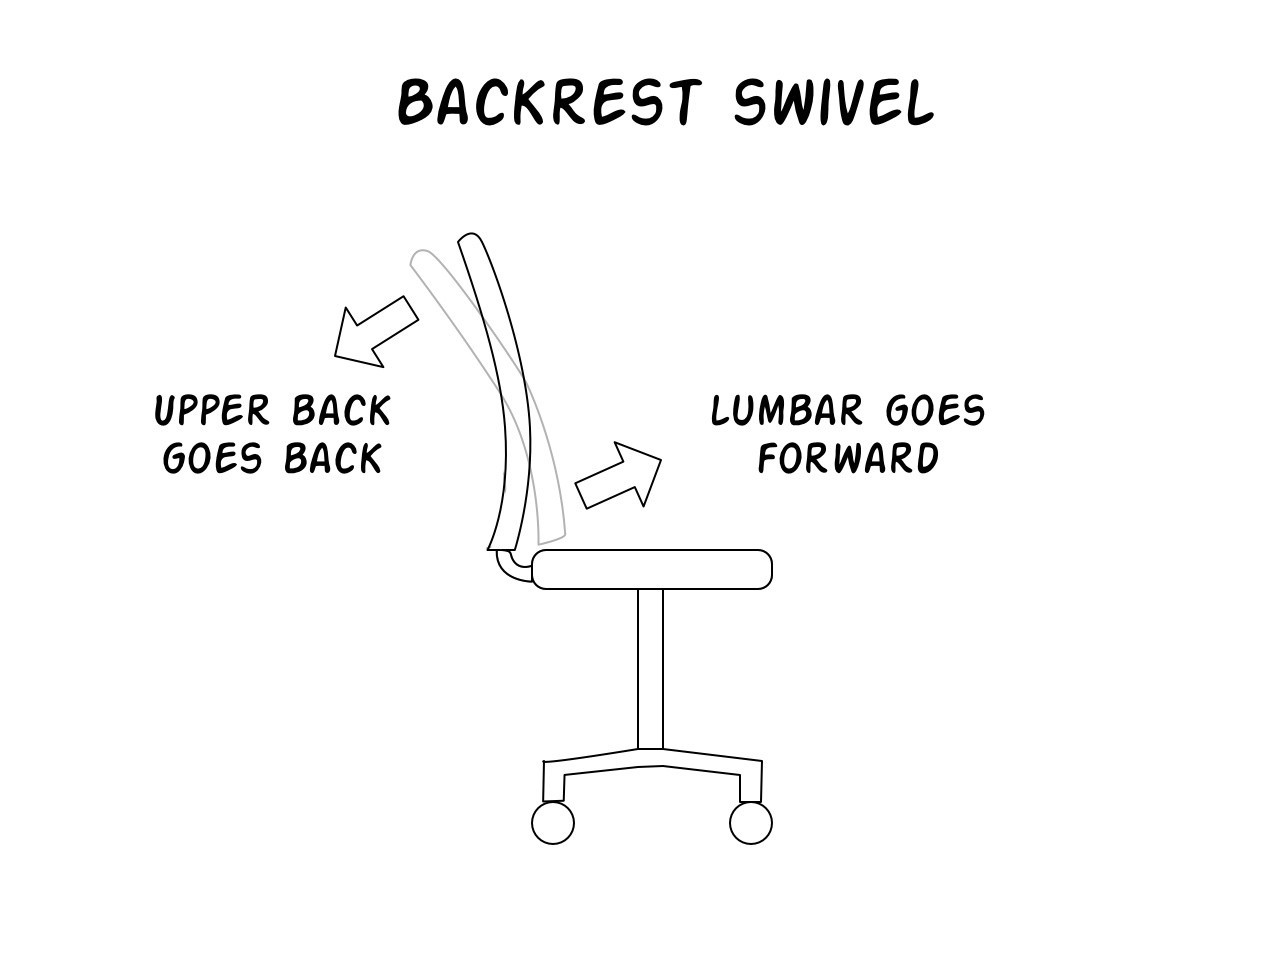 Backrest Swivel diagram